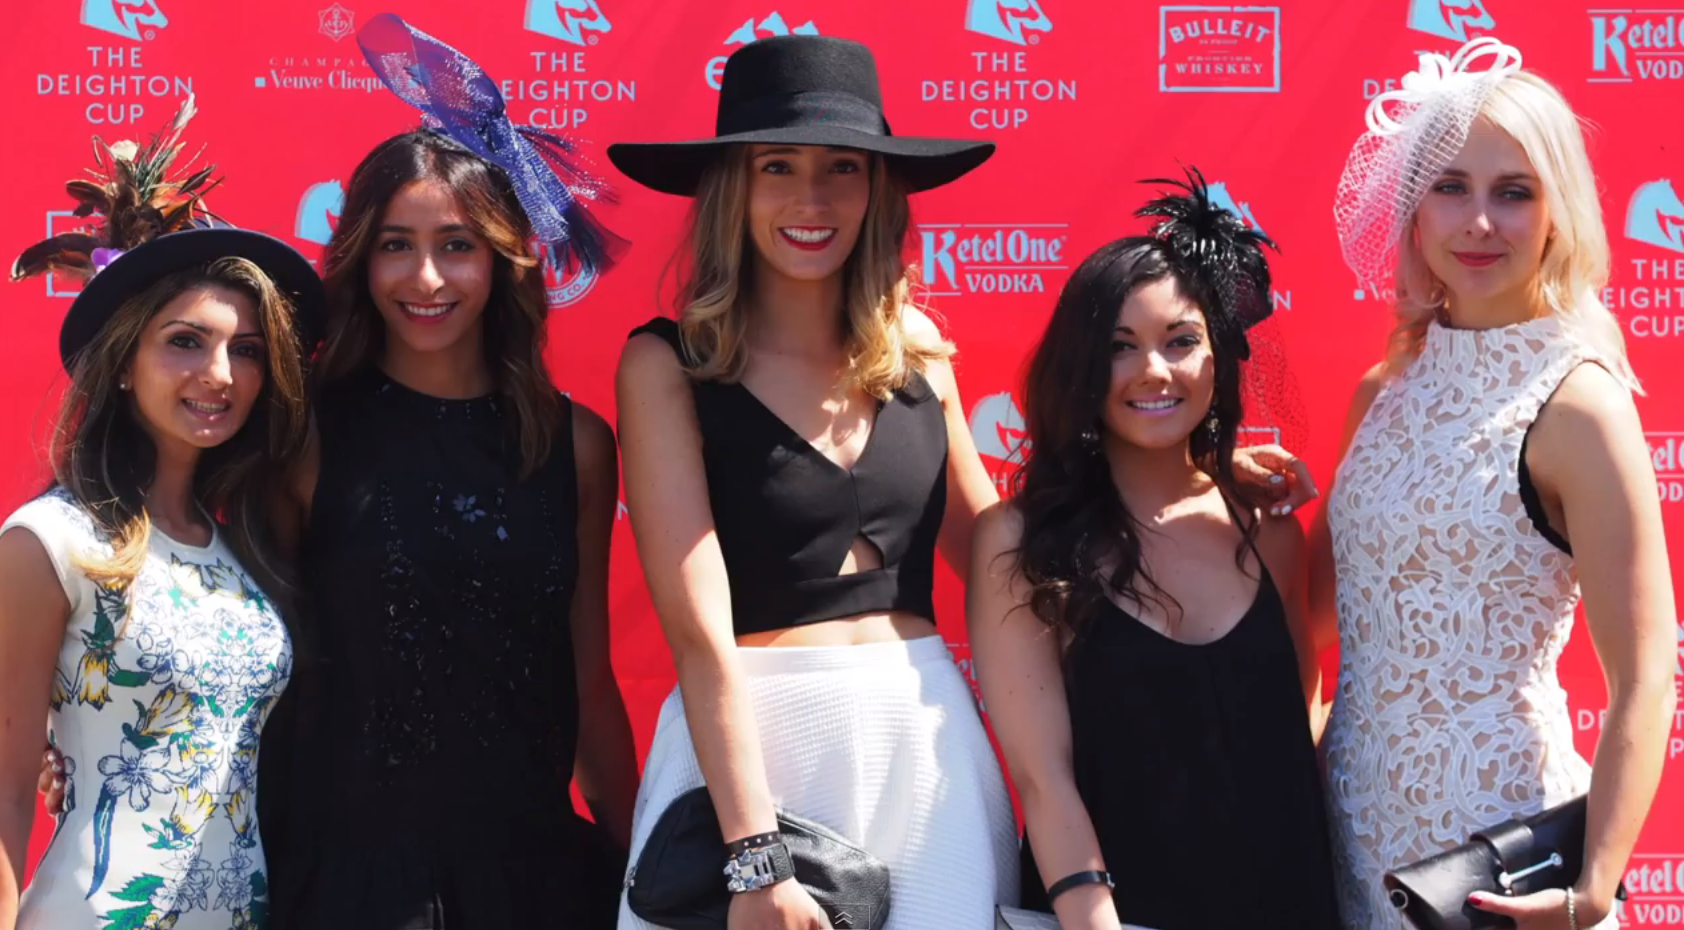 Deighton cup fashion